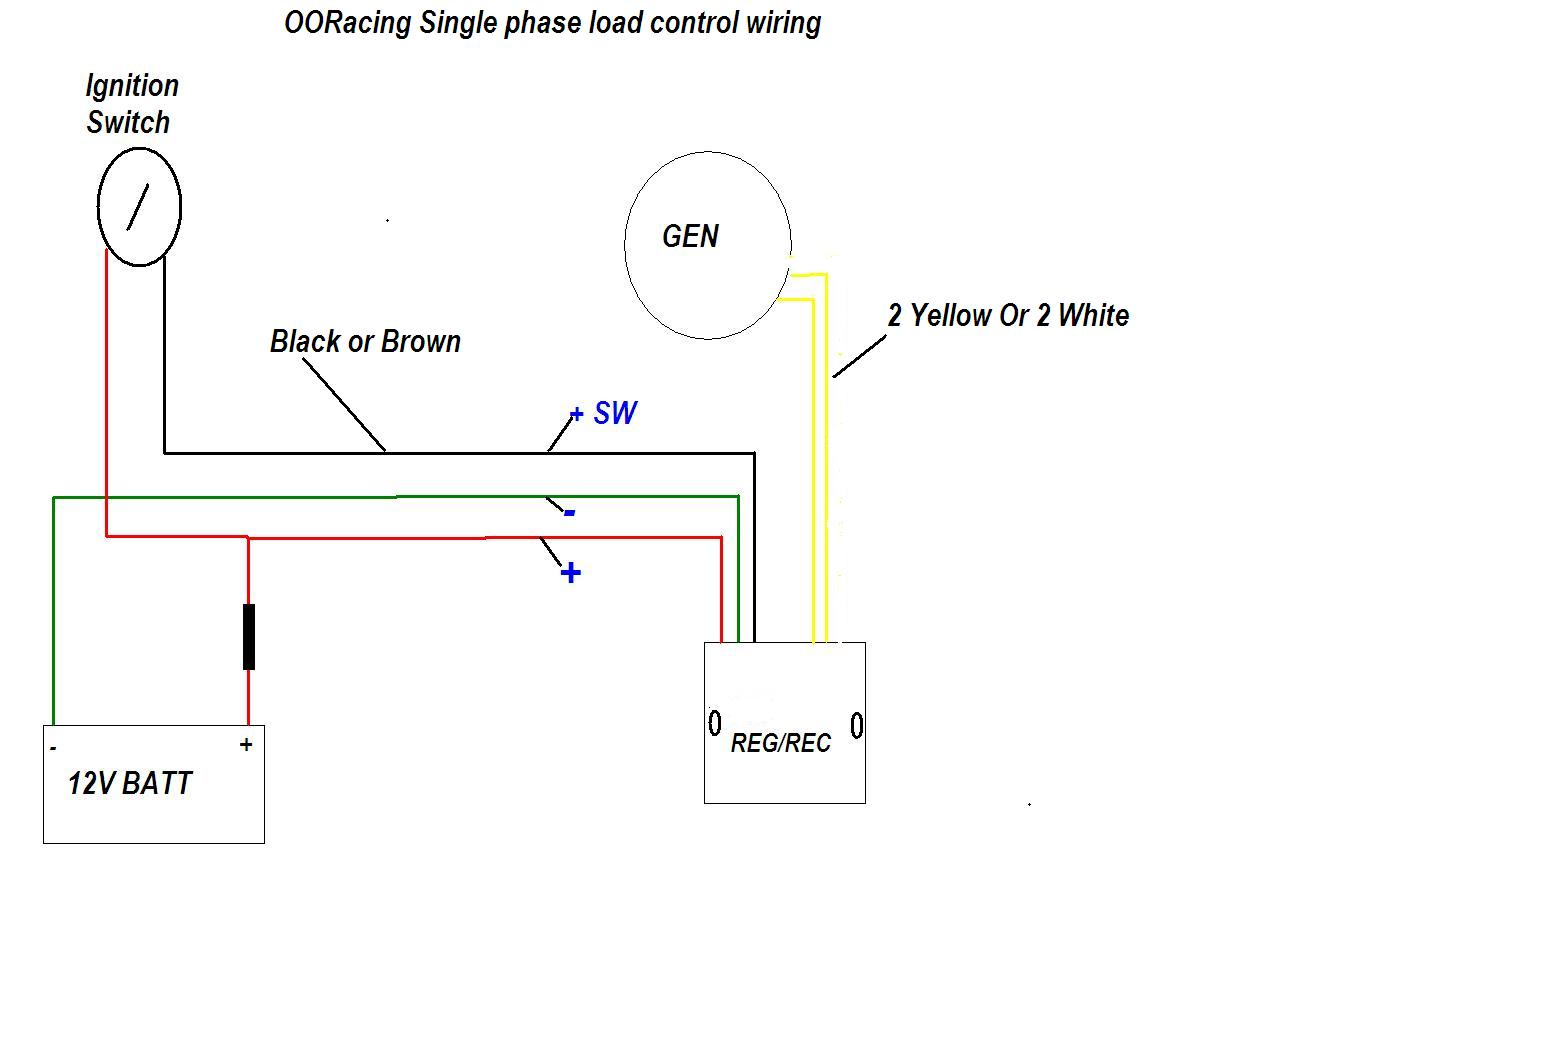 Single_phase_50W_Gen_wiring pit bike wiring diagram diagram wiring diagrams for diy car repairs pit bike headlight wiring diagram at crackthecode.co